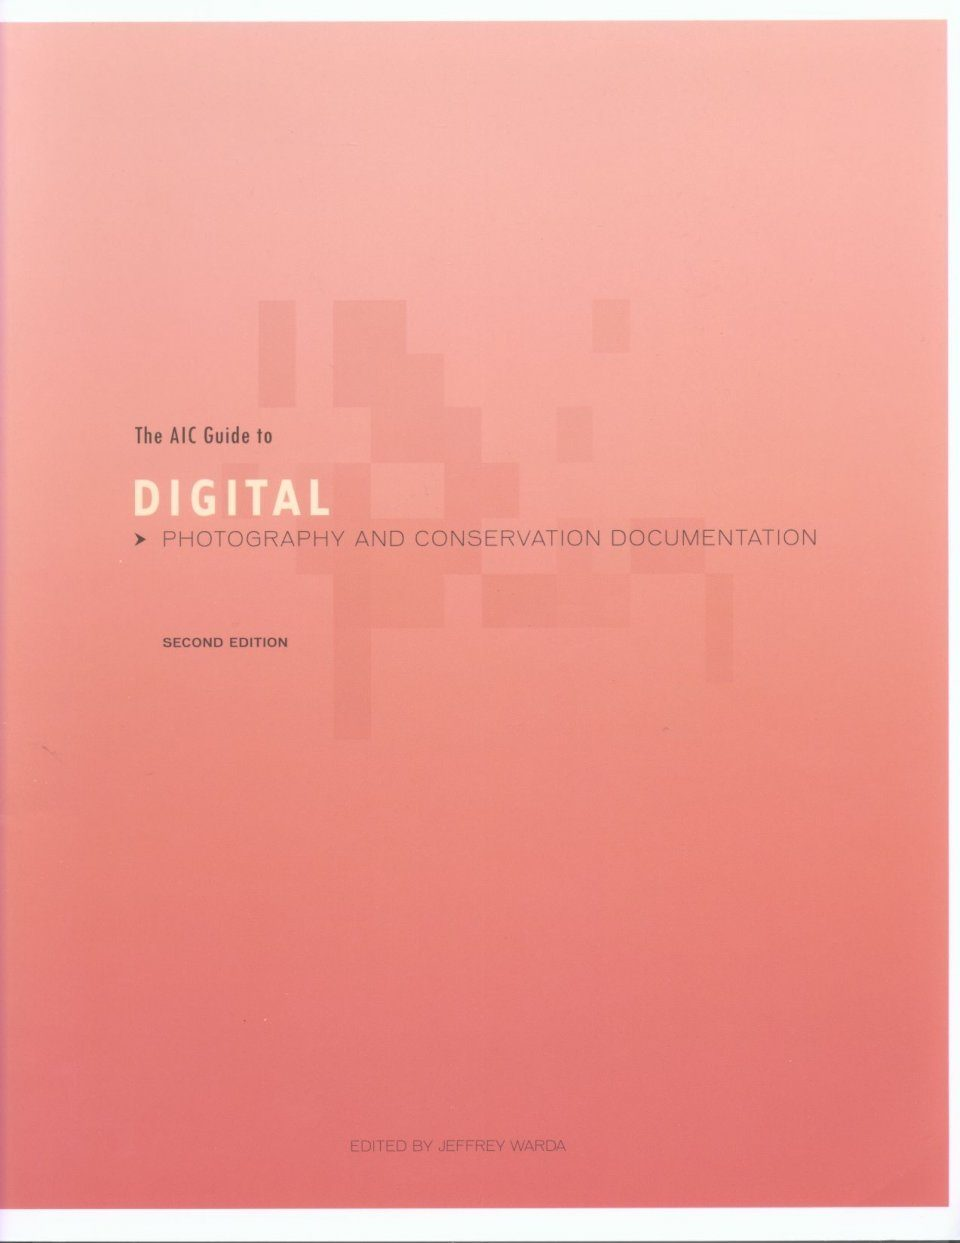 The AIC Guide to Digital Photography and Conservation Documentation